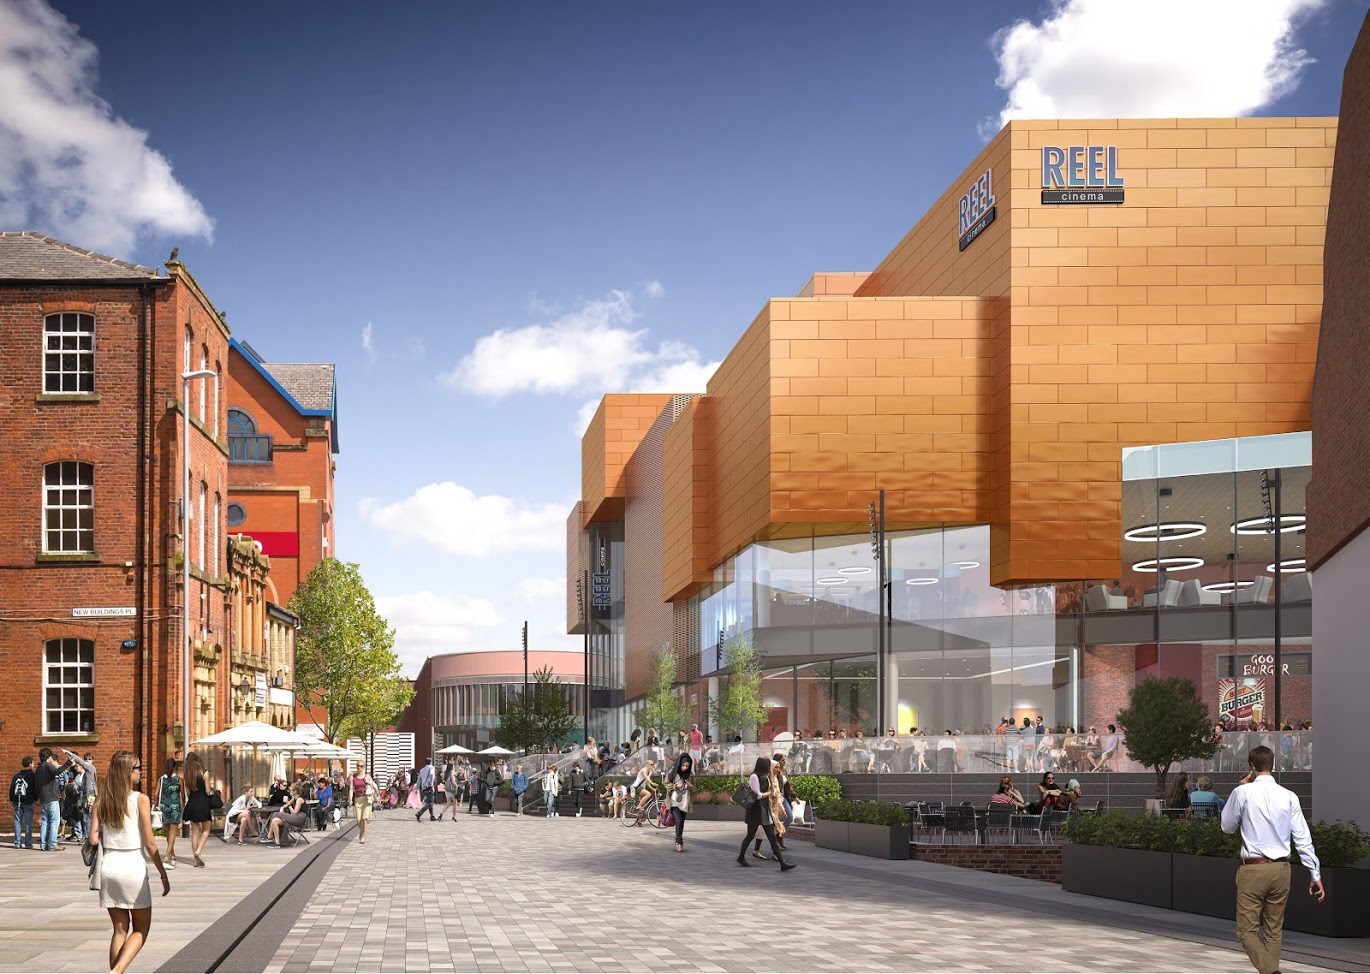 Image: Rochdale Riverside planning application submitted